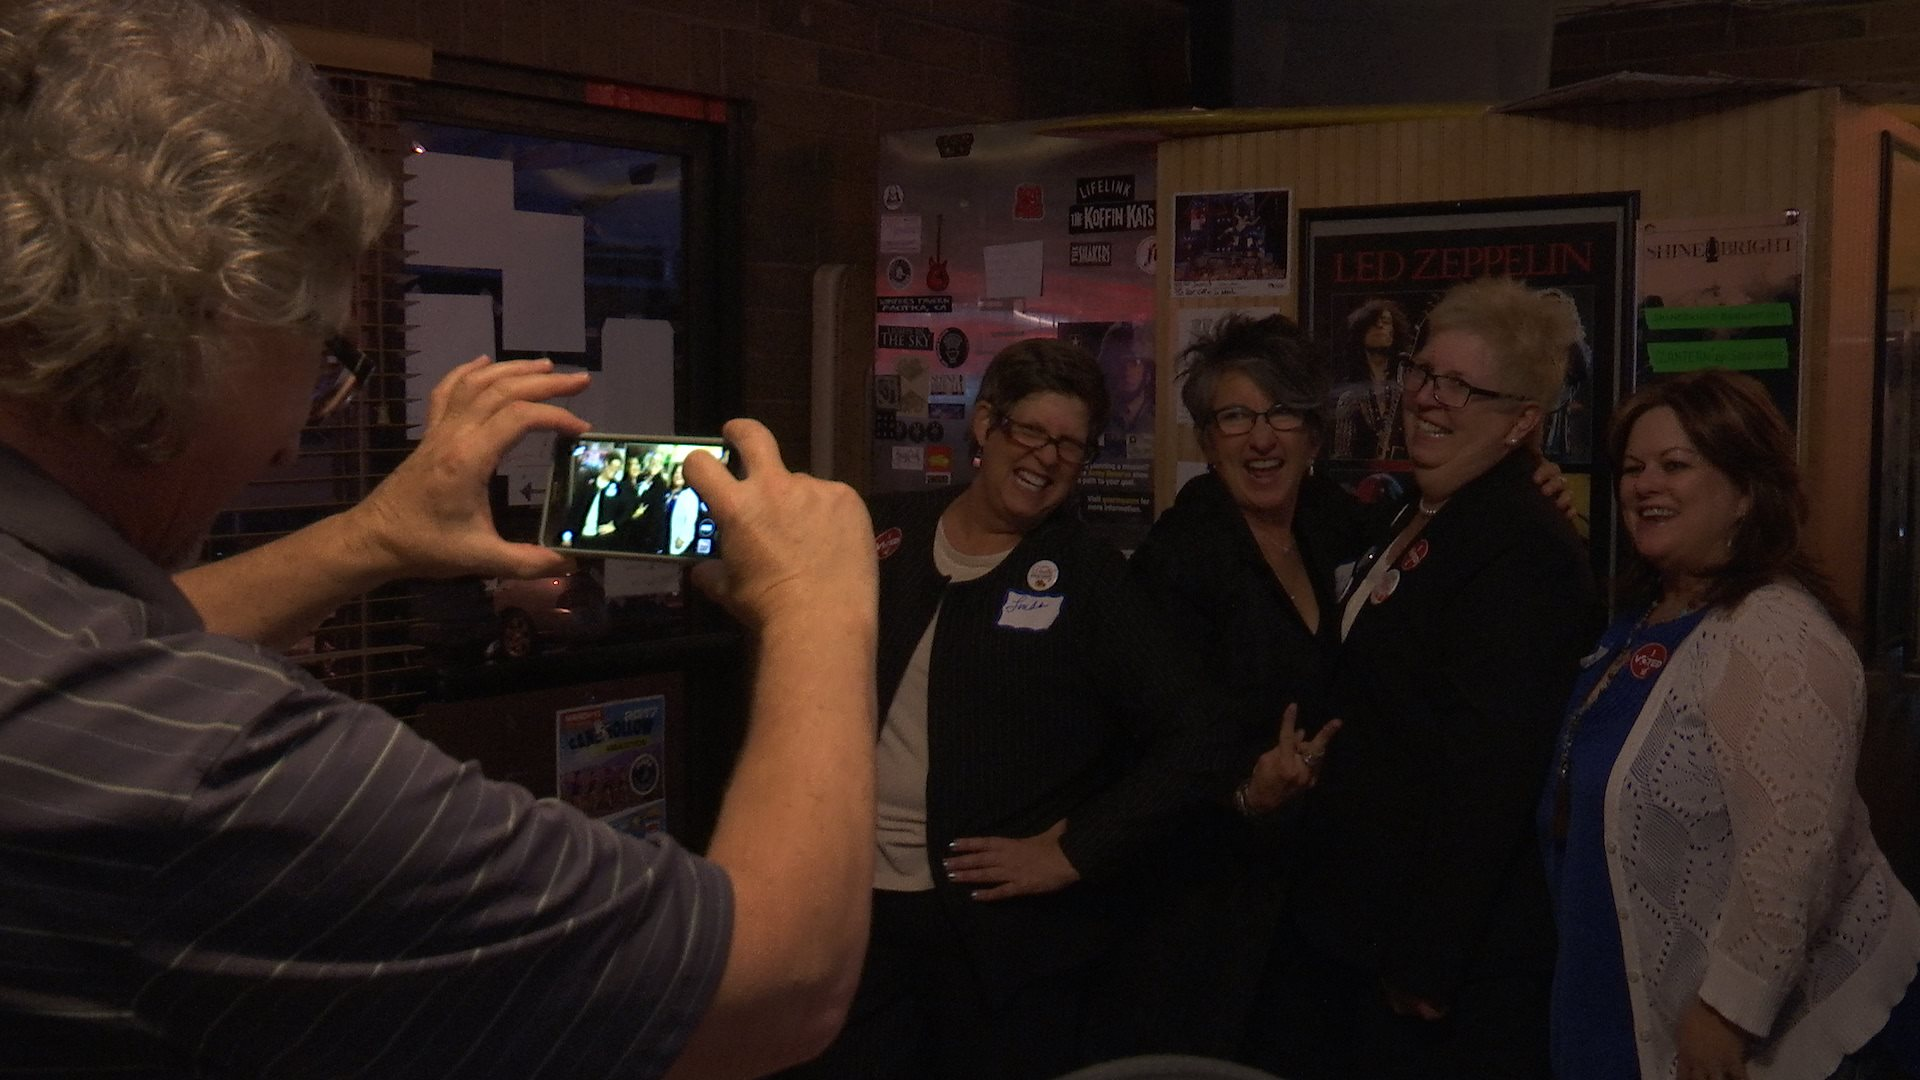 L-R: Linda Stay, Elise West and Democratic candidate for State Senate District 29, Dorothy Engelman, pose for a photo at a party for Washington County Democrats, St. George, Utah, Nov. 8, 2016 | Photo by Shelden Demke, St. George News